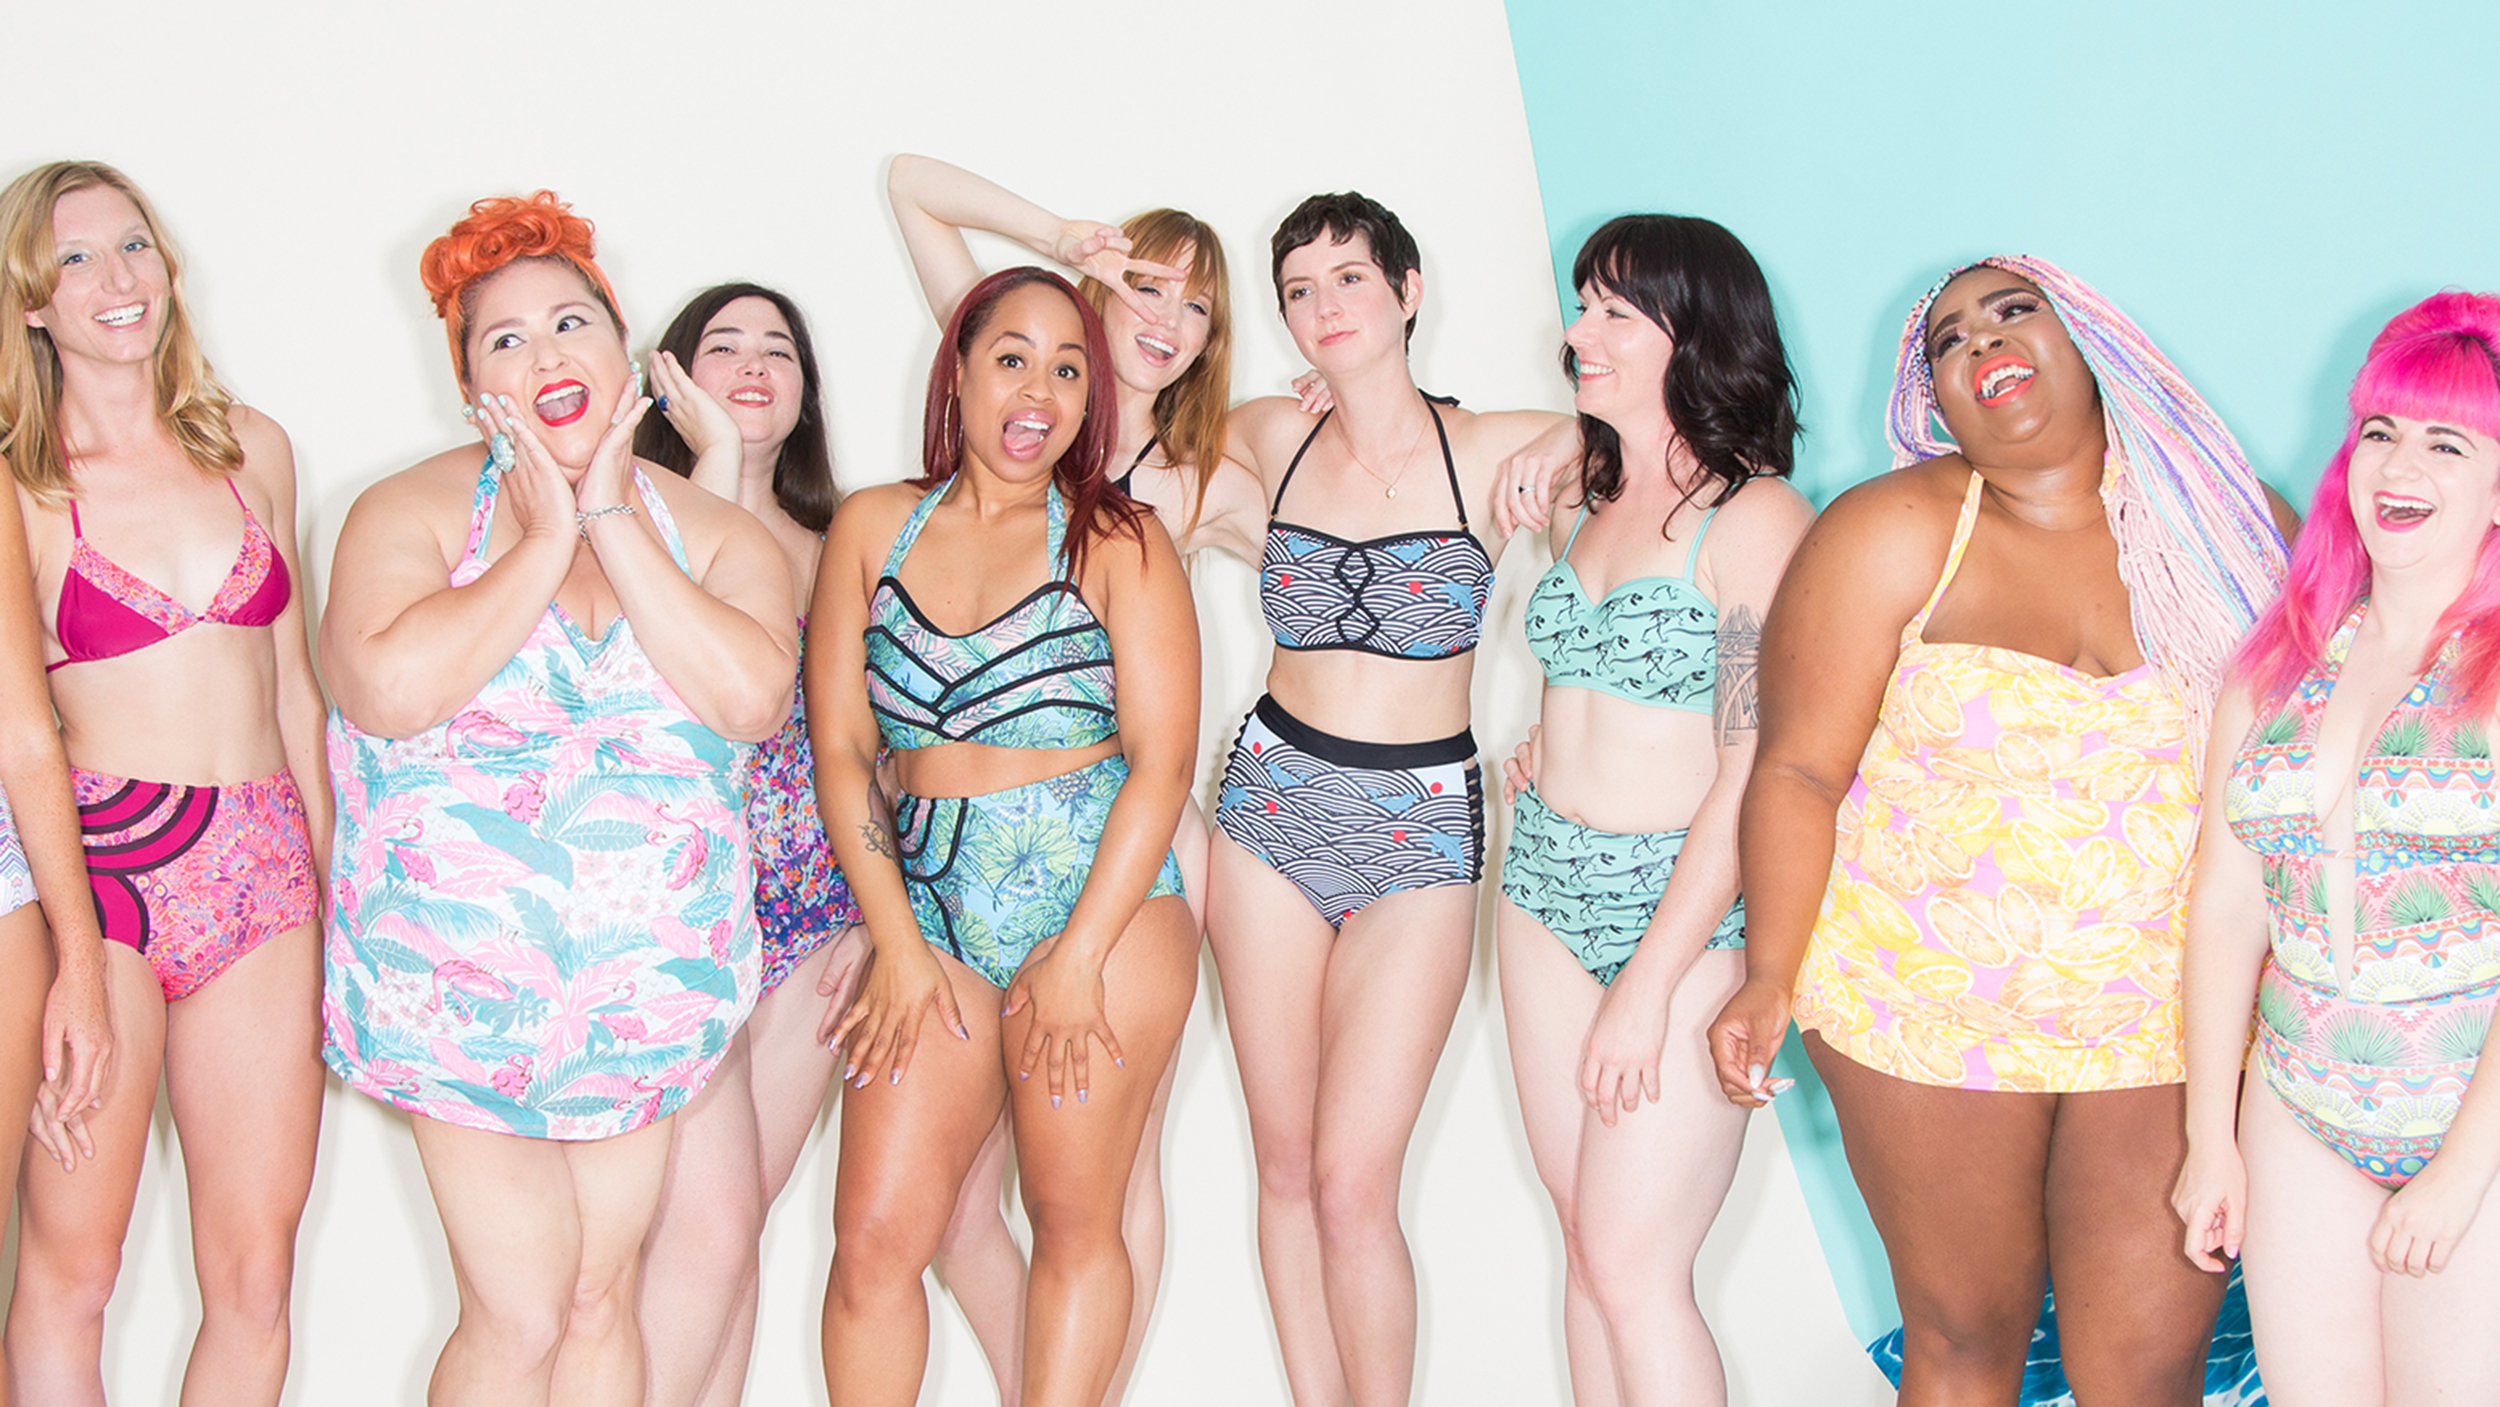 ModCloth is known for its free-spirited vibe and representation of all types of women.